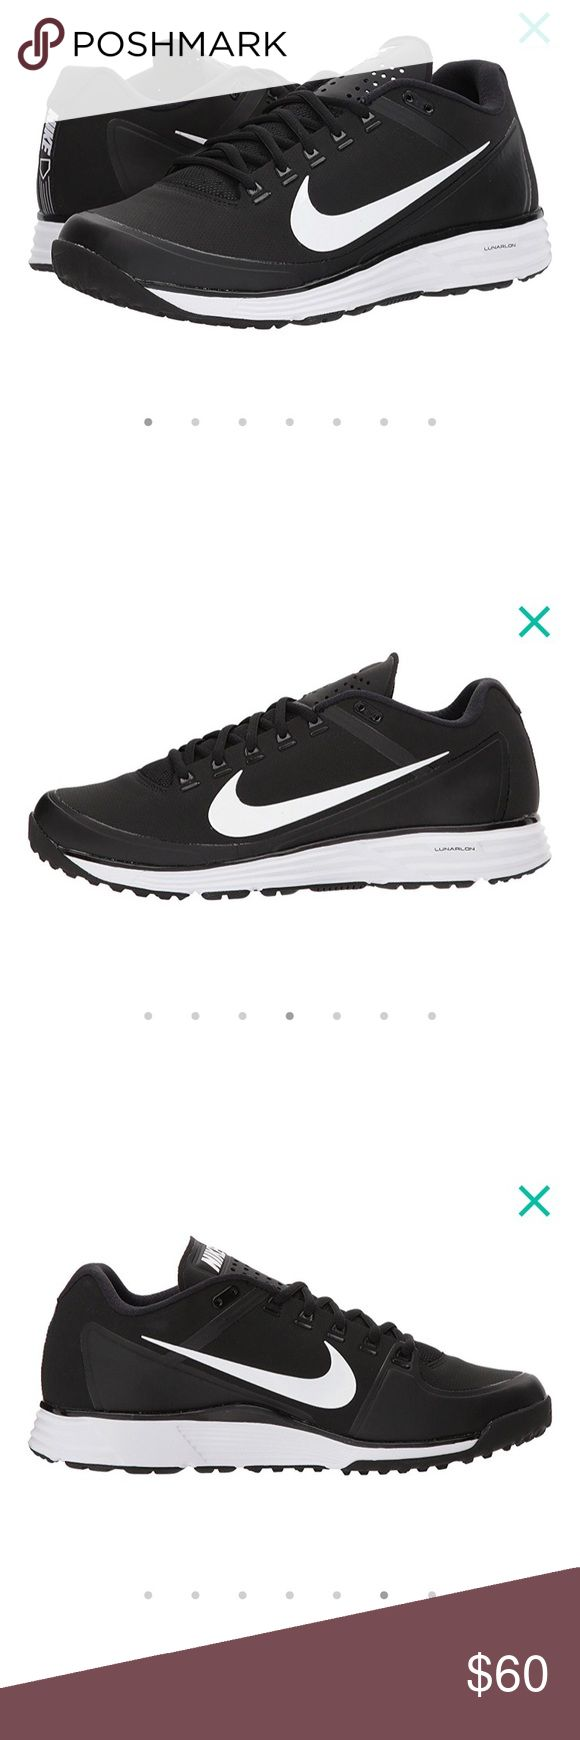 Nike Men Turf Shoes Black and White Size 8.5 NEW These are brand new and have never been worn! I just want to get a different pair and can't return these because they are from a bulk team order. Nike Shoes Athletic Shoes